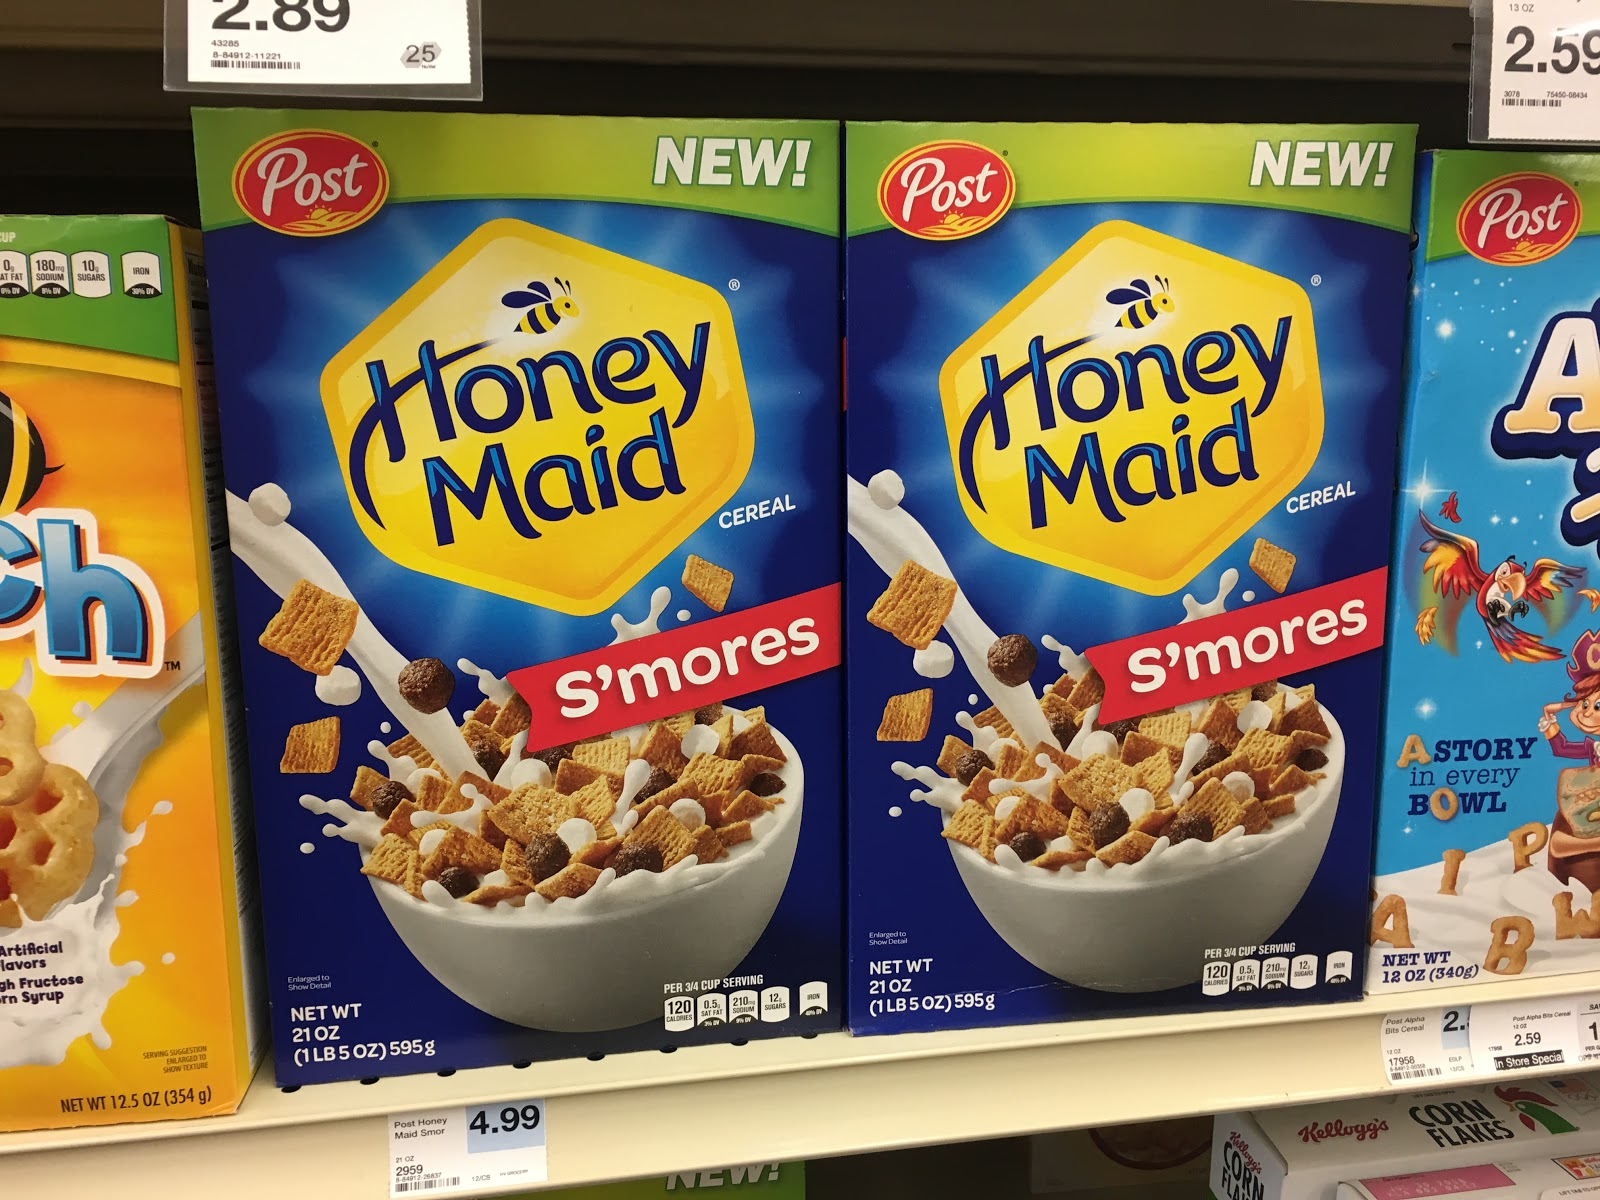 I Was Excited To Hear That Hy Vee Is Now Carrying Honey Maid S Mores Cereal And We Were Going Have The Opportunity Share It With You